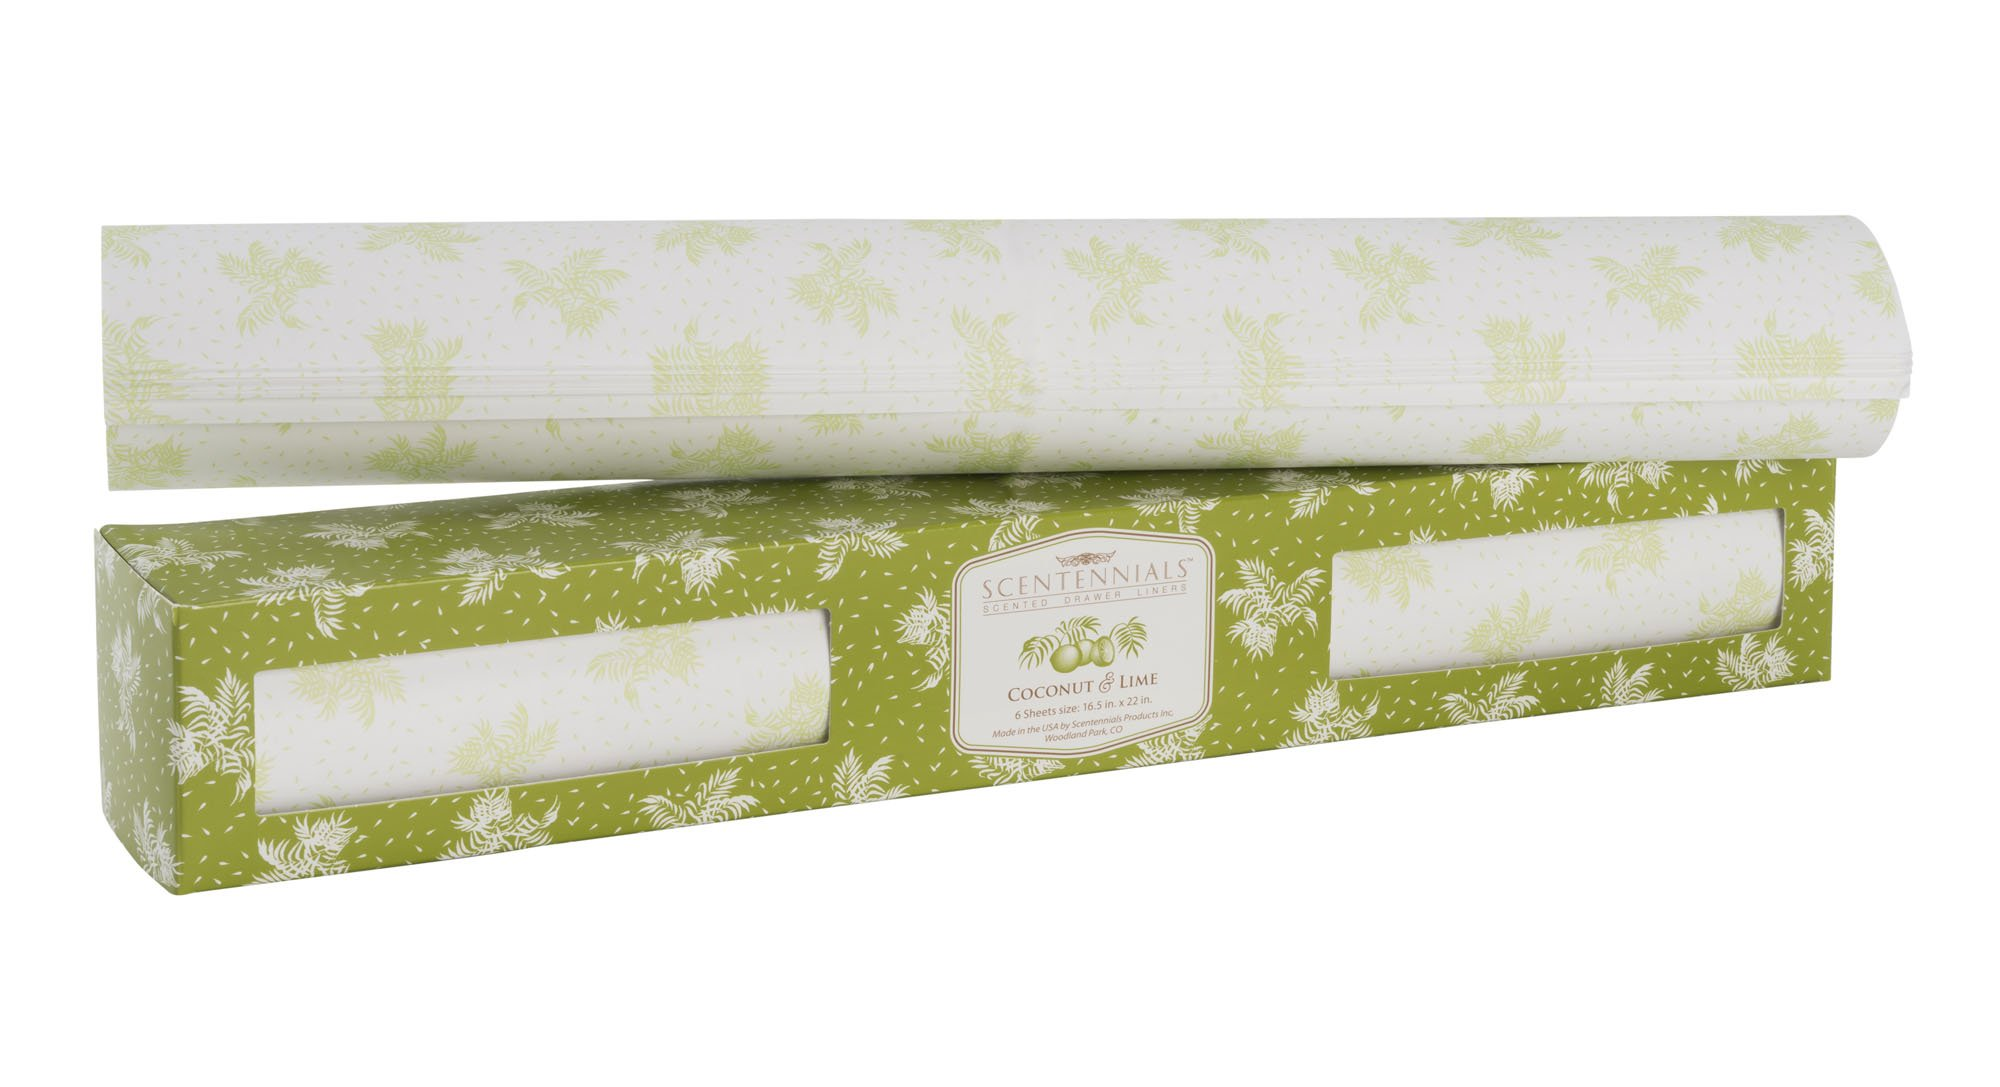 Scentennials Coconut & Lime (12 Sheets) Scented Drawer Liners by Scentennials Scented Drawer Liners